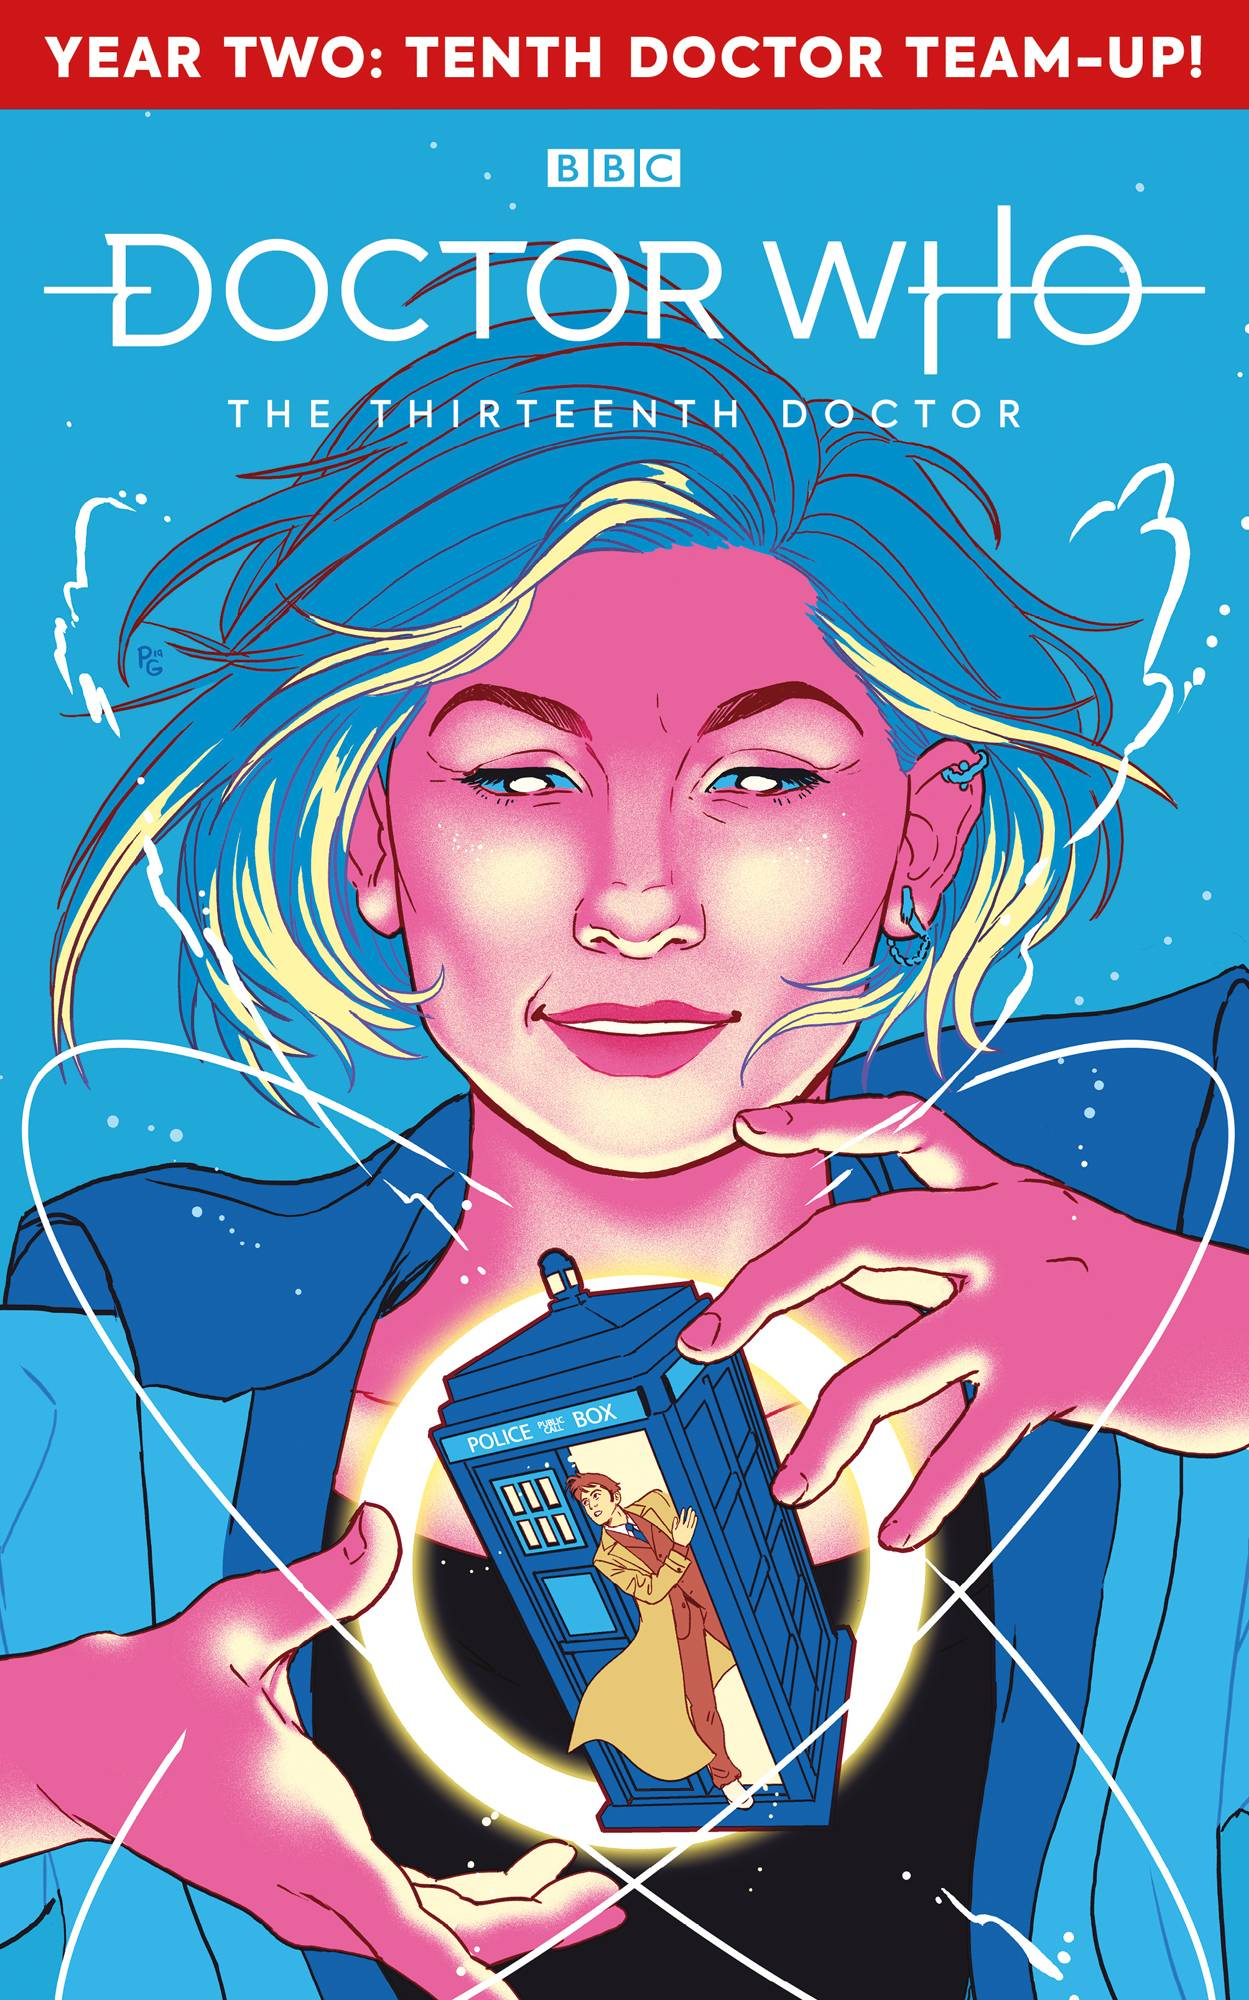 Doctor Who: The 13th Doctor - Season Two #1 (2020)